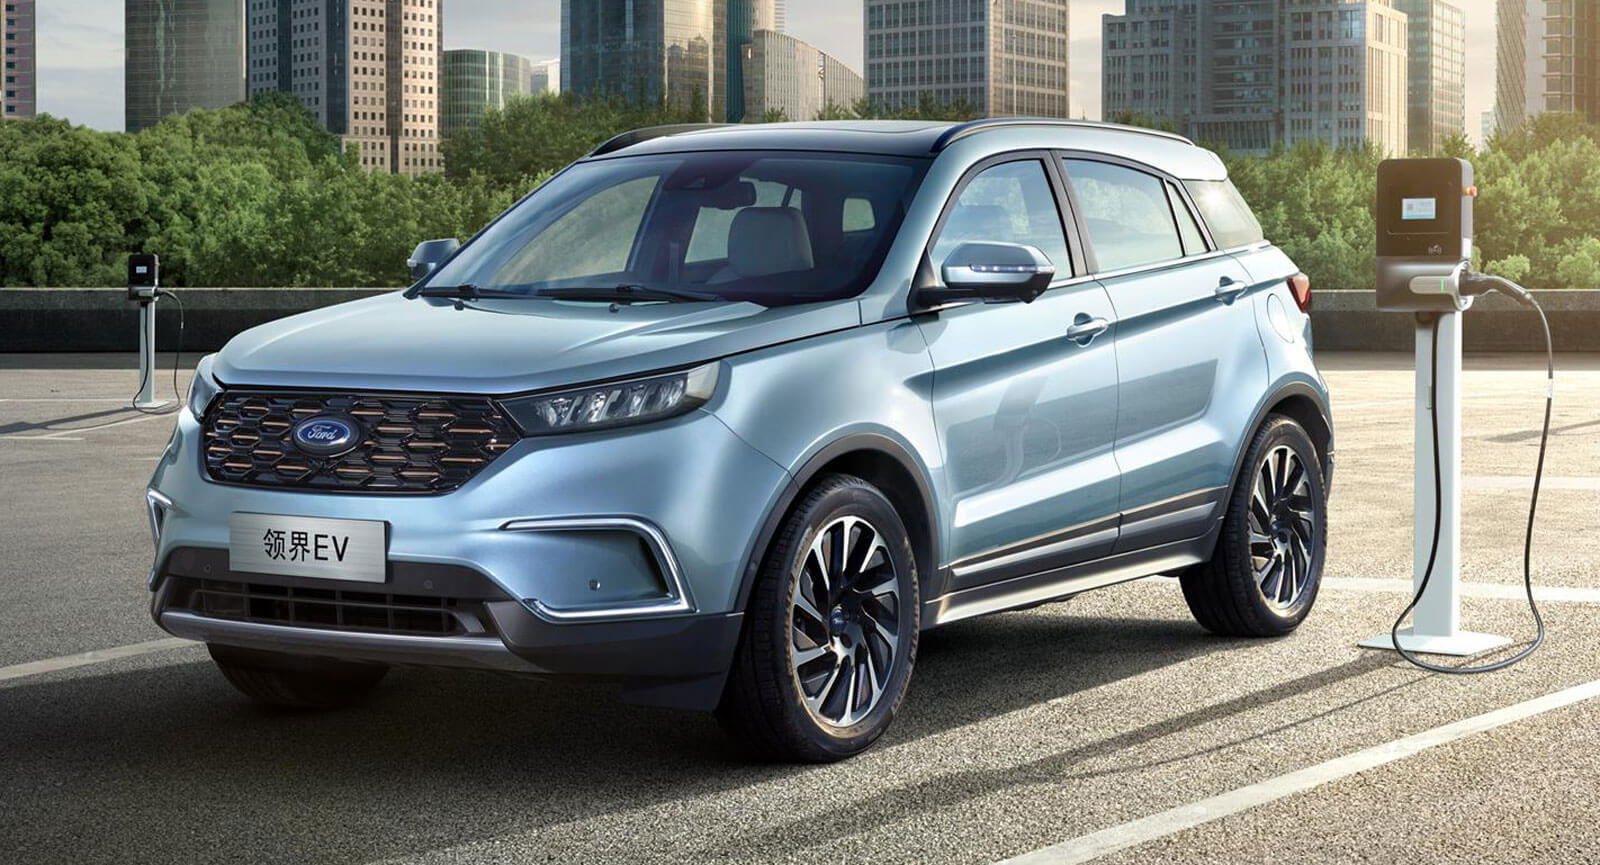 2021 Ford Territory EV for China expands battery range, cuts prices